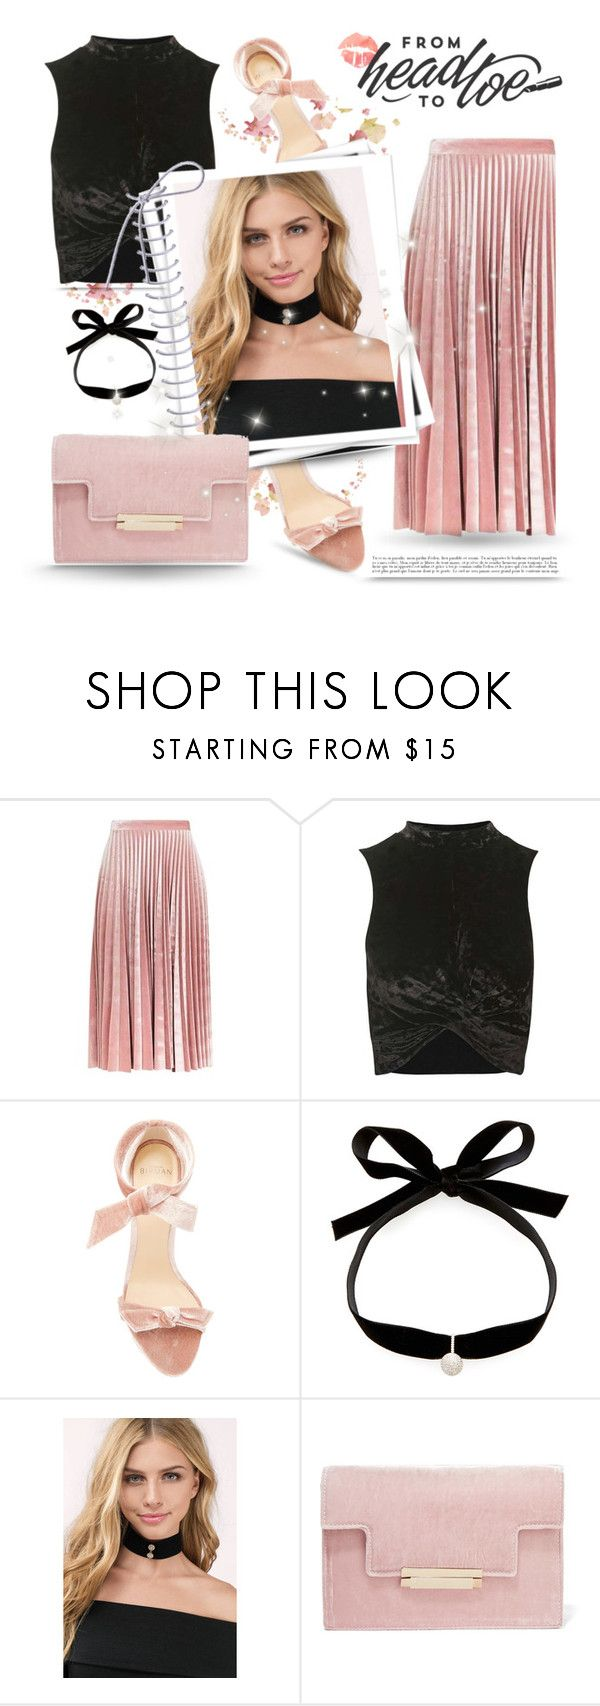 """""""Head to toe"""" by chicpeacelove ❤ liked on Polyvore featuring Topshop, Alexandre Birman, Mateo, Tobi, GALA, AERIN, velvet and fashionset"""